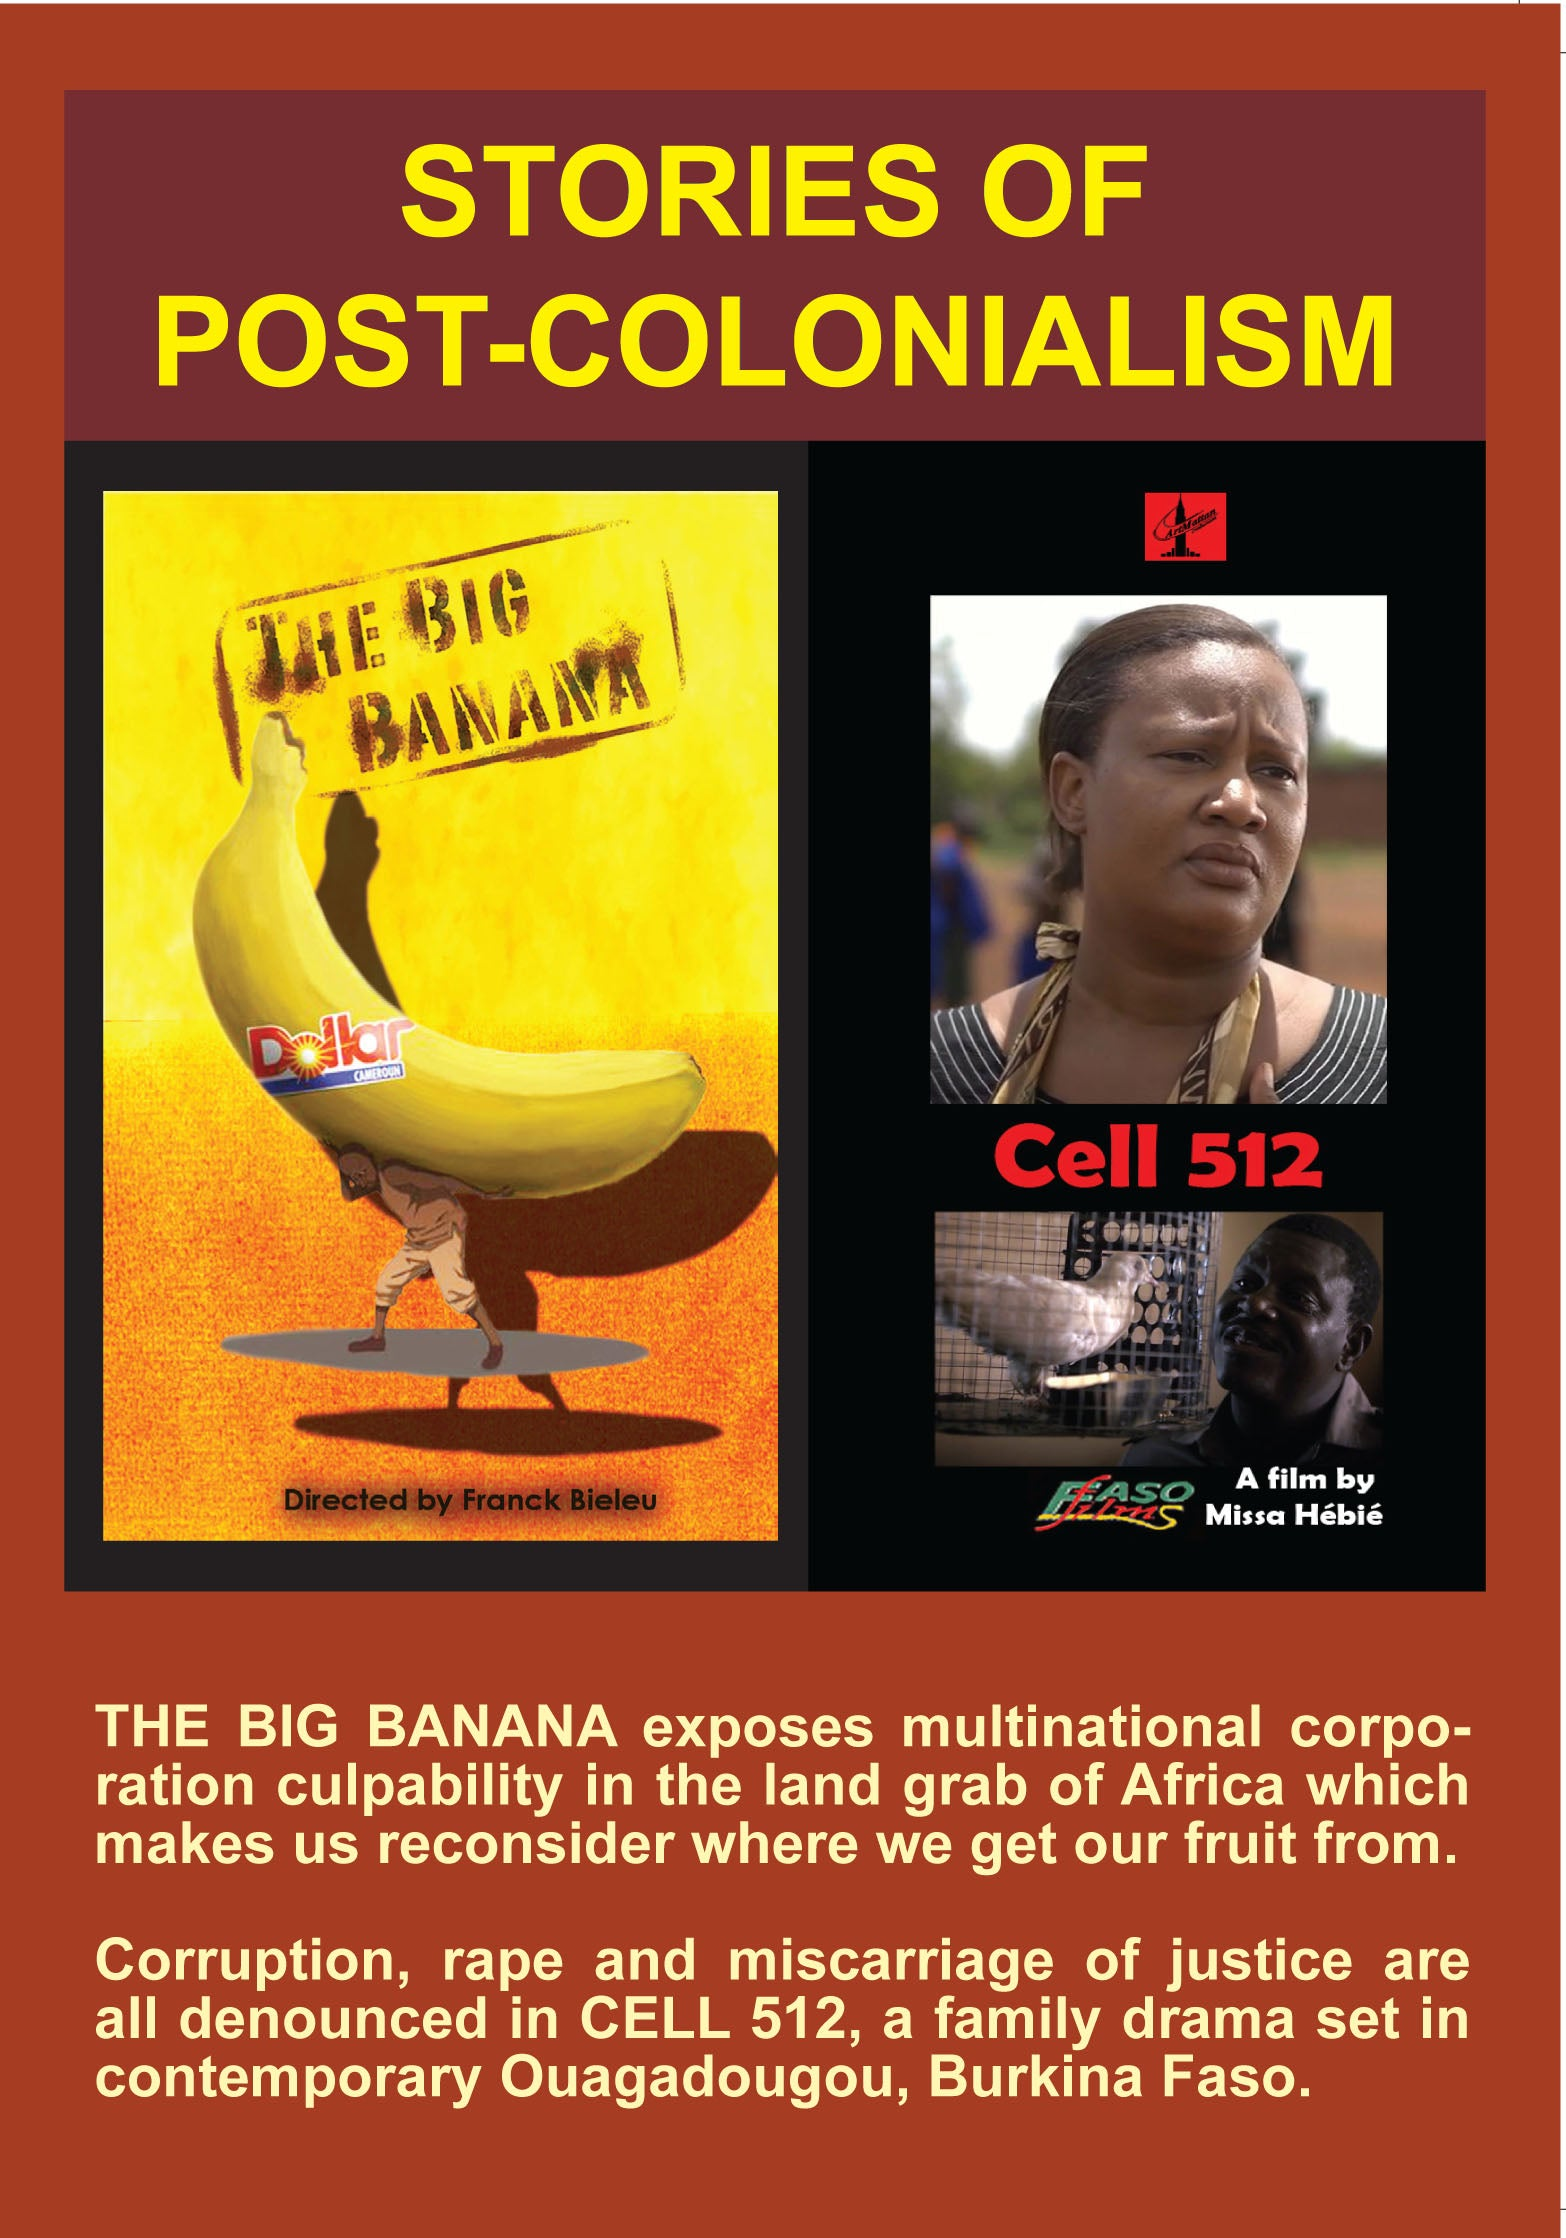 STORIES OF POST-COLONIALISM: THE BIG BANANA & CELL 512 -  Cameroon / Burkina Faso